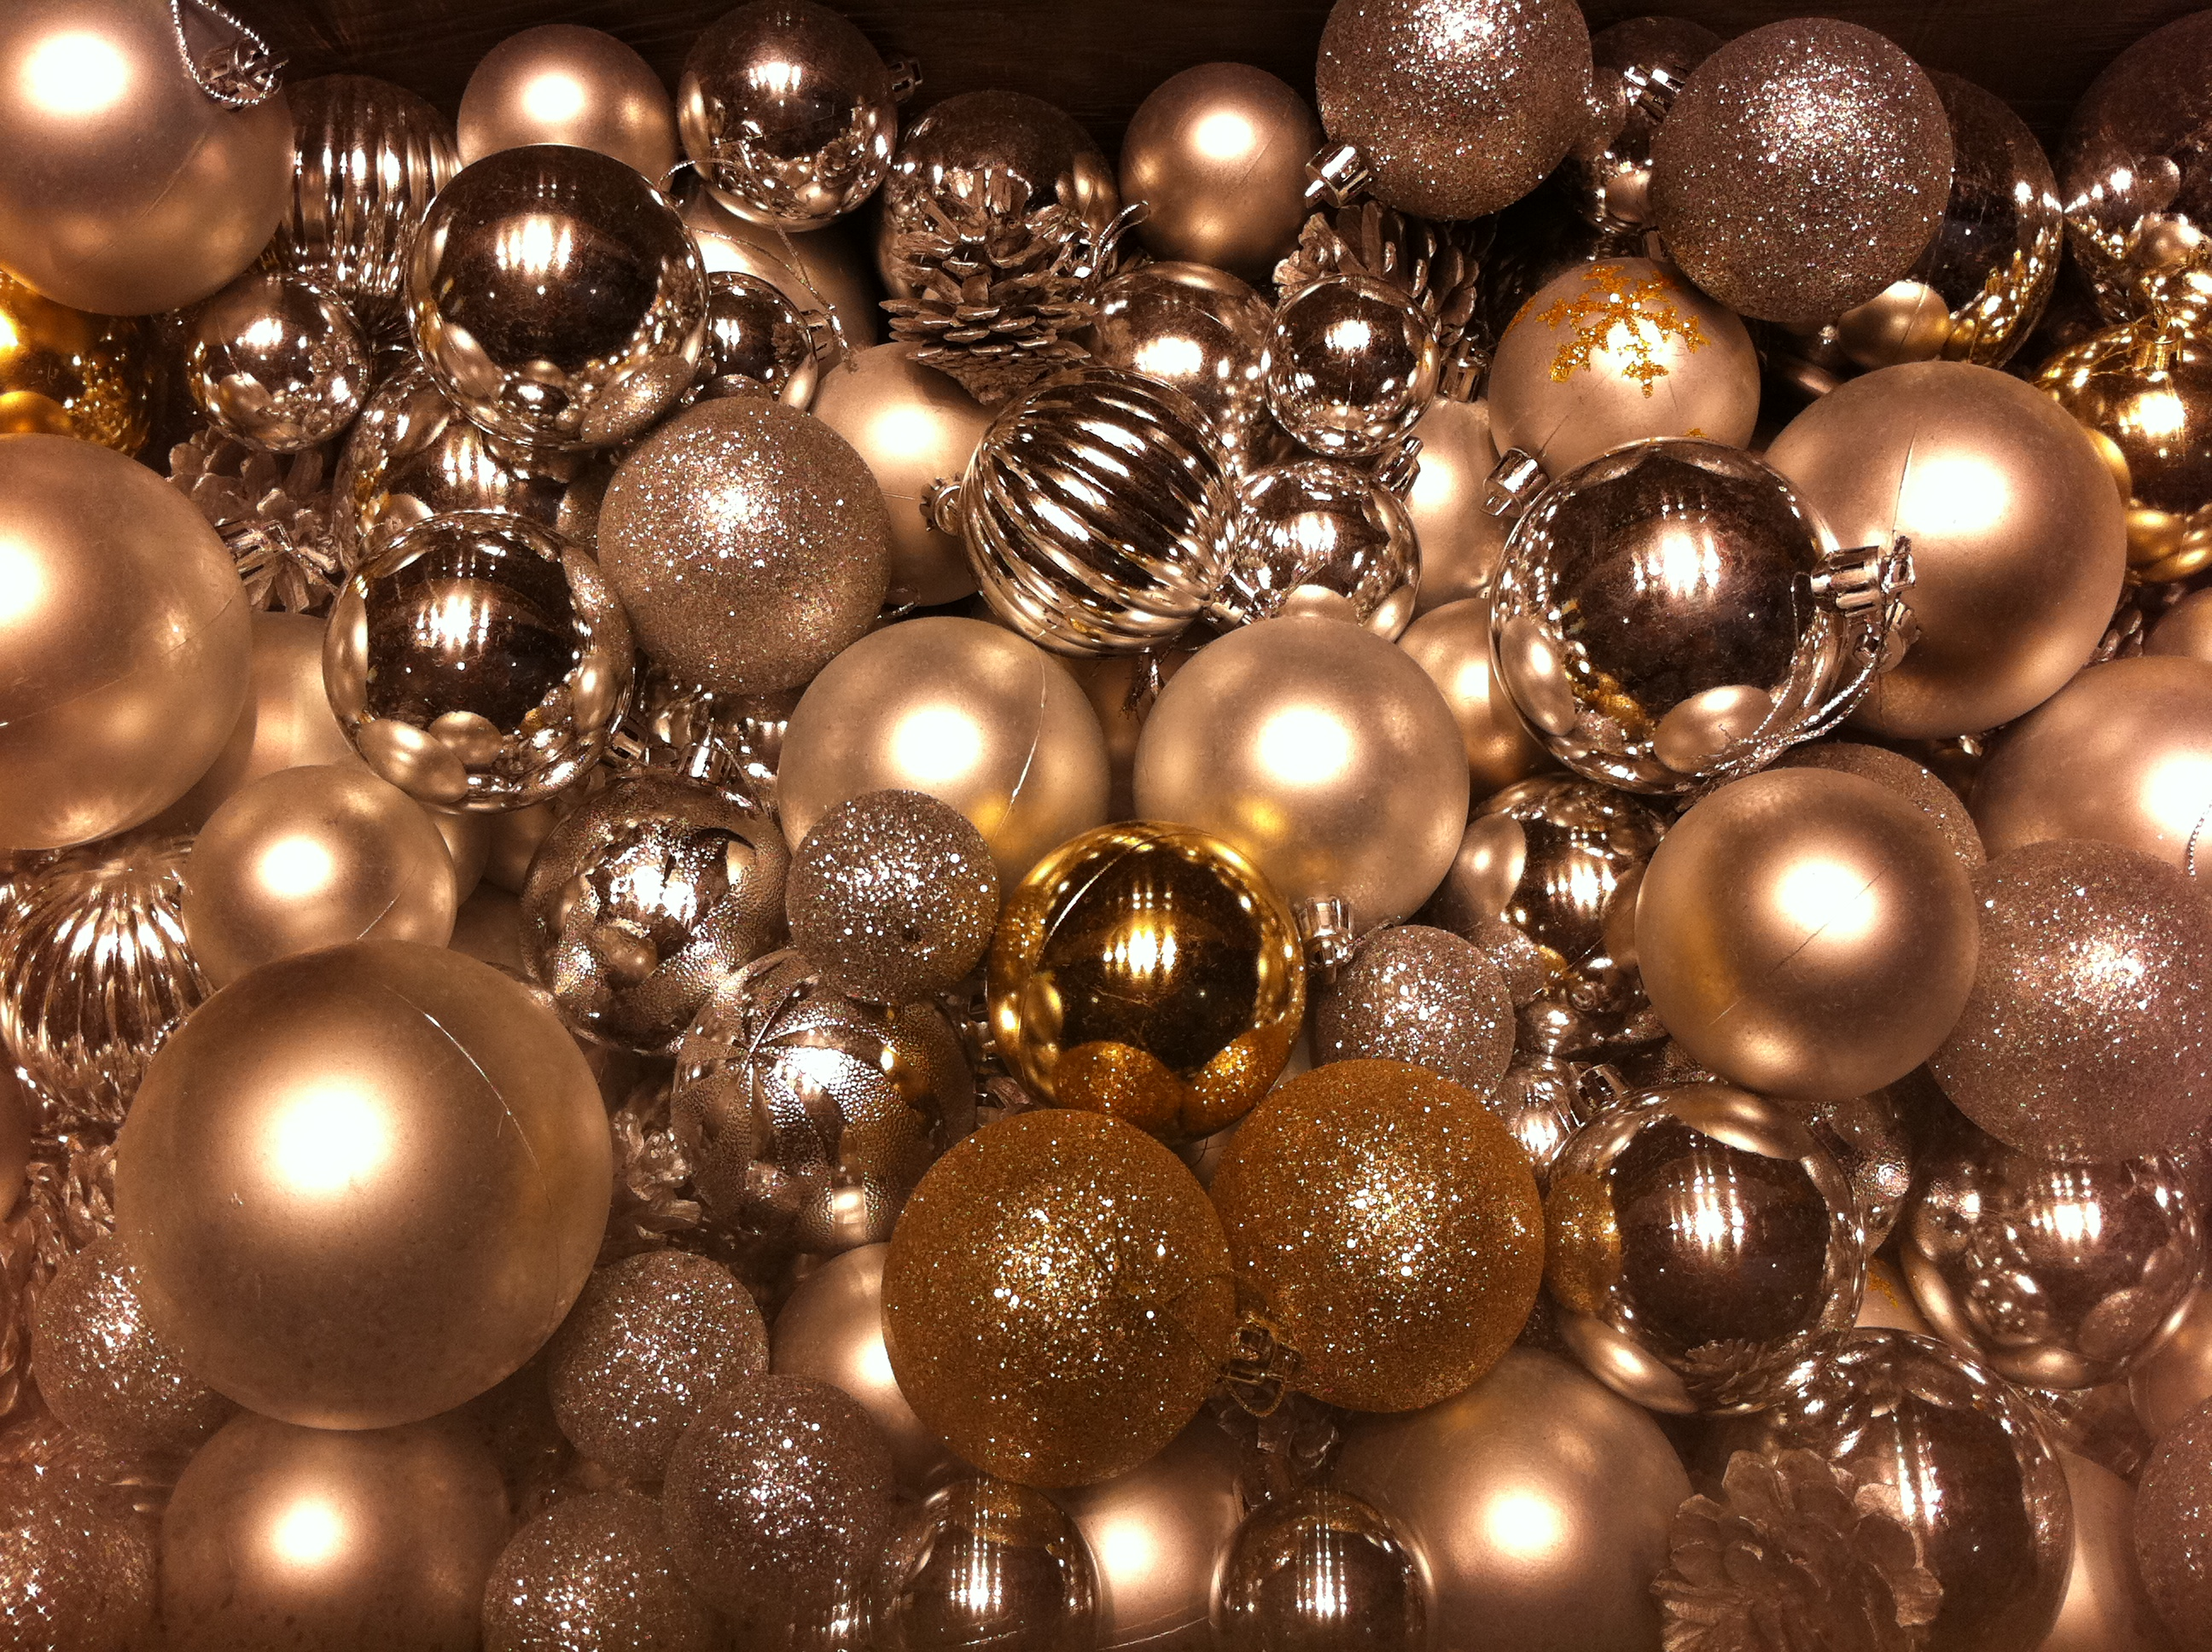 filehk central ifc mall christmas ornaments decor balls dec 2012jpg - How To Decorate Christmas Balls